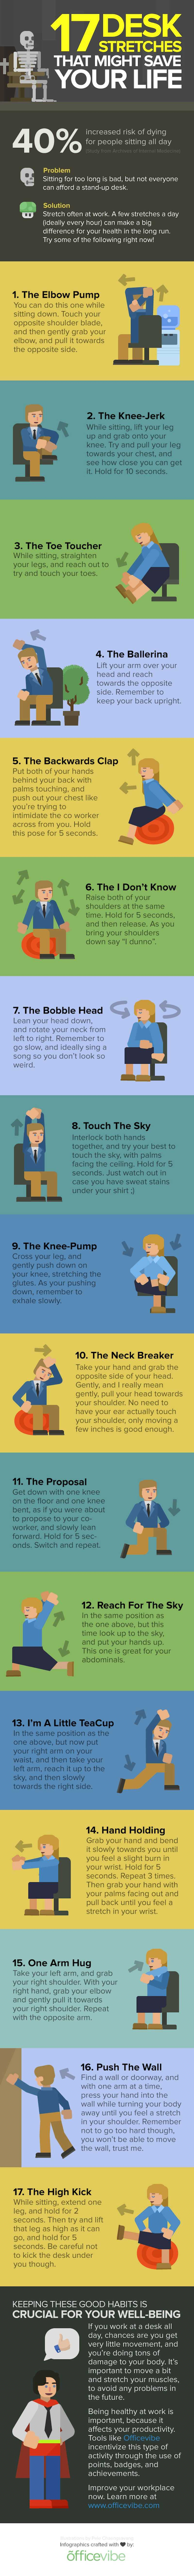 Desk Stretches That Might Save Your Life